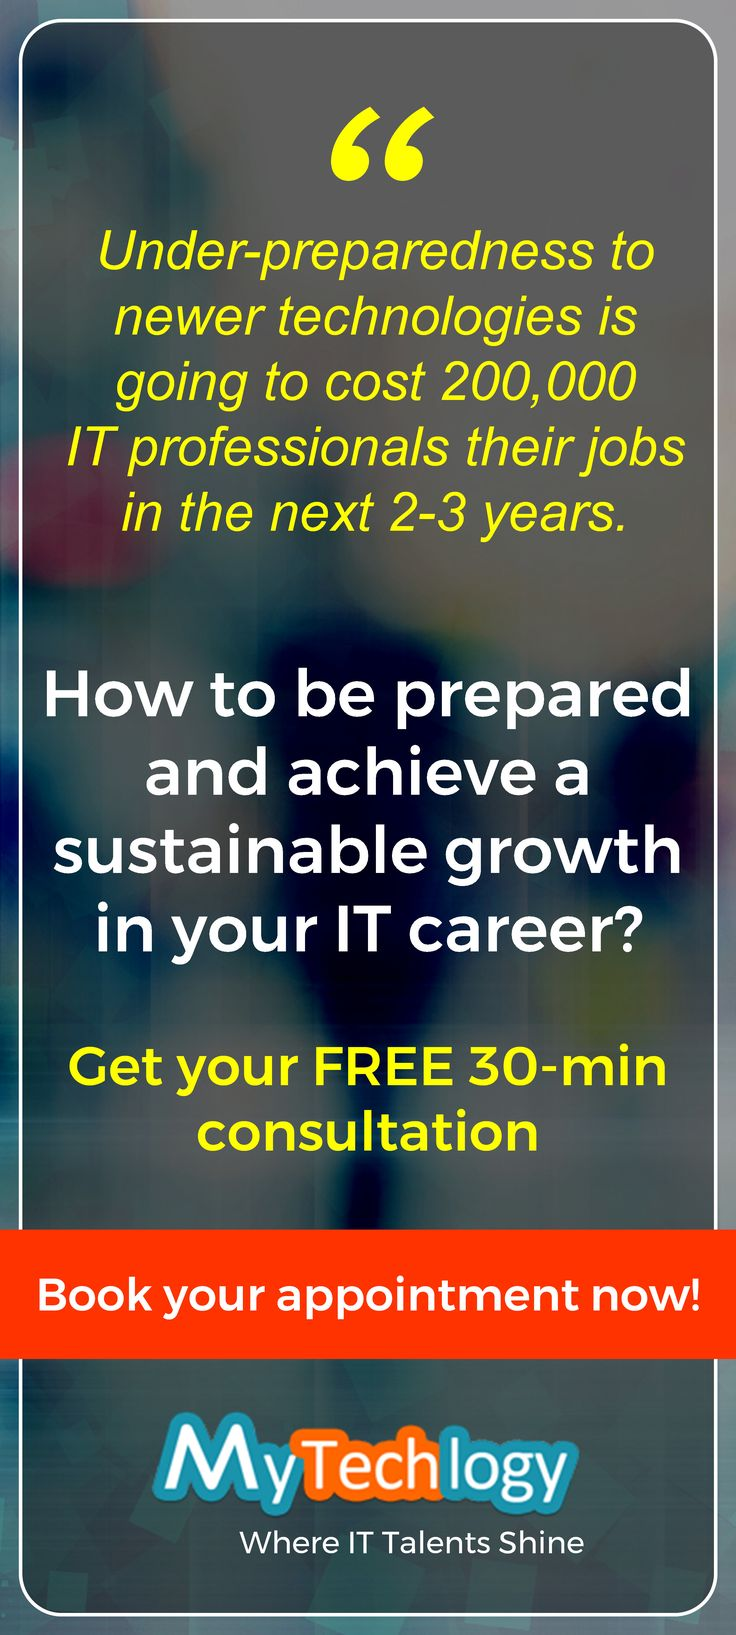 Under-preparedness to newer technologies is going to cost 200,000 IT professionals their jobs in the next 2-3 years. But how to be prepared and achieve a sustainable growth in your IT career? Get a FREE 30-min consultation about your career in IT from an experienced IT professional and career coach only on MyTechlogy (no credit card required). To book your FREE session visit: https://www.mytechlogy.com/IT-career-development-services/career-coaches/Ravindra-Prasad/